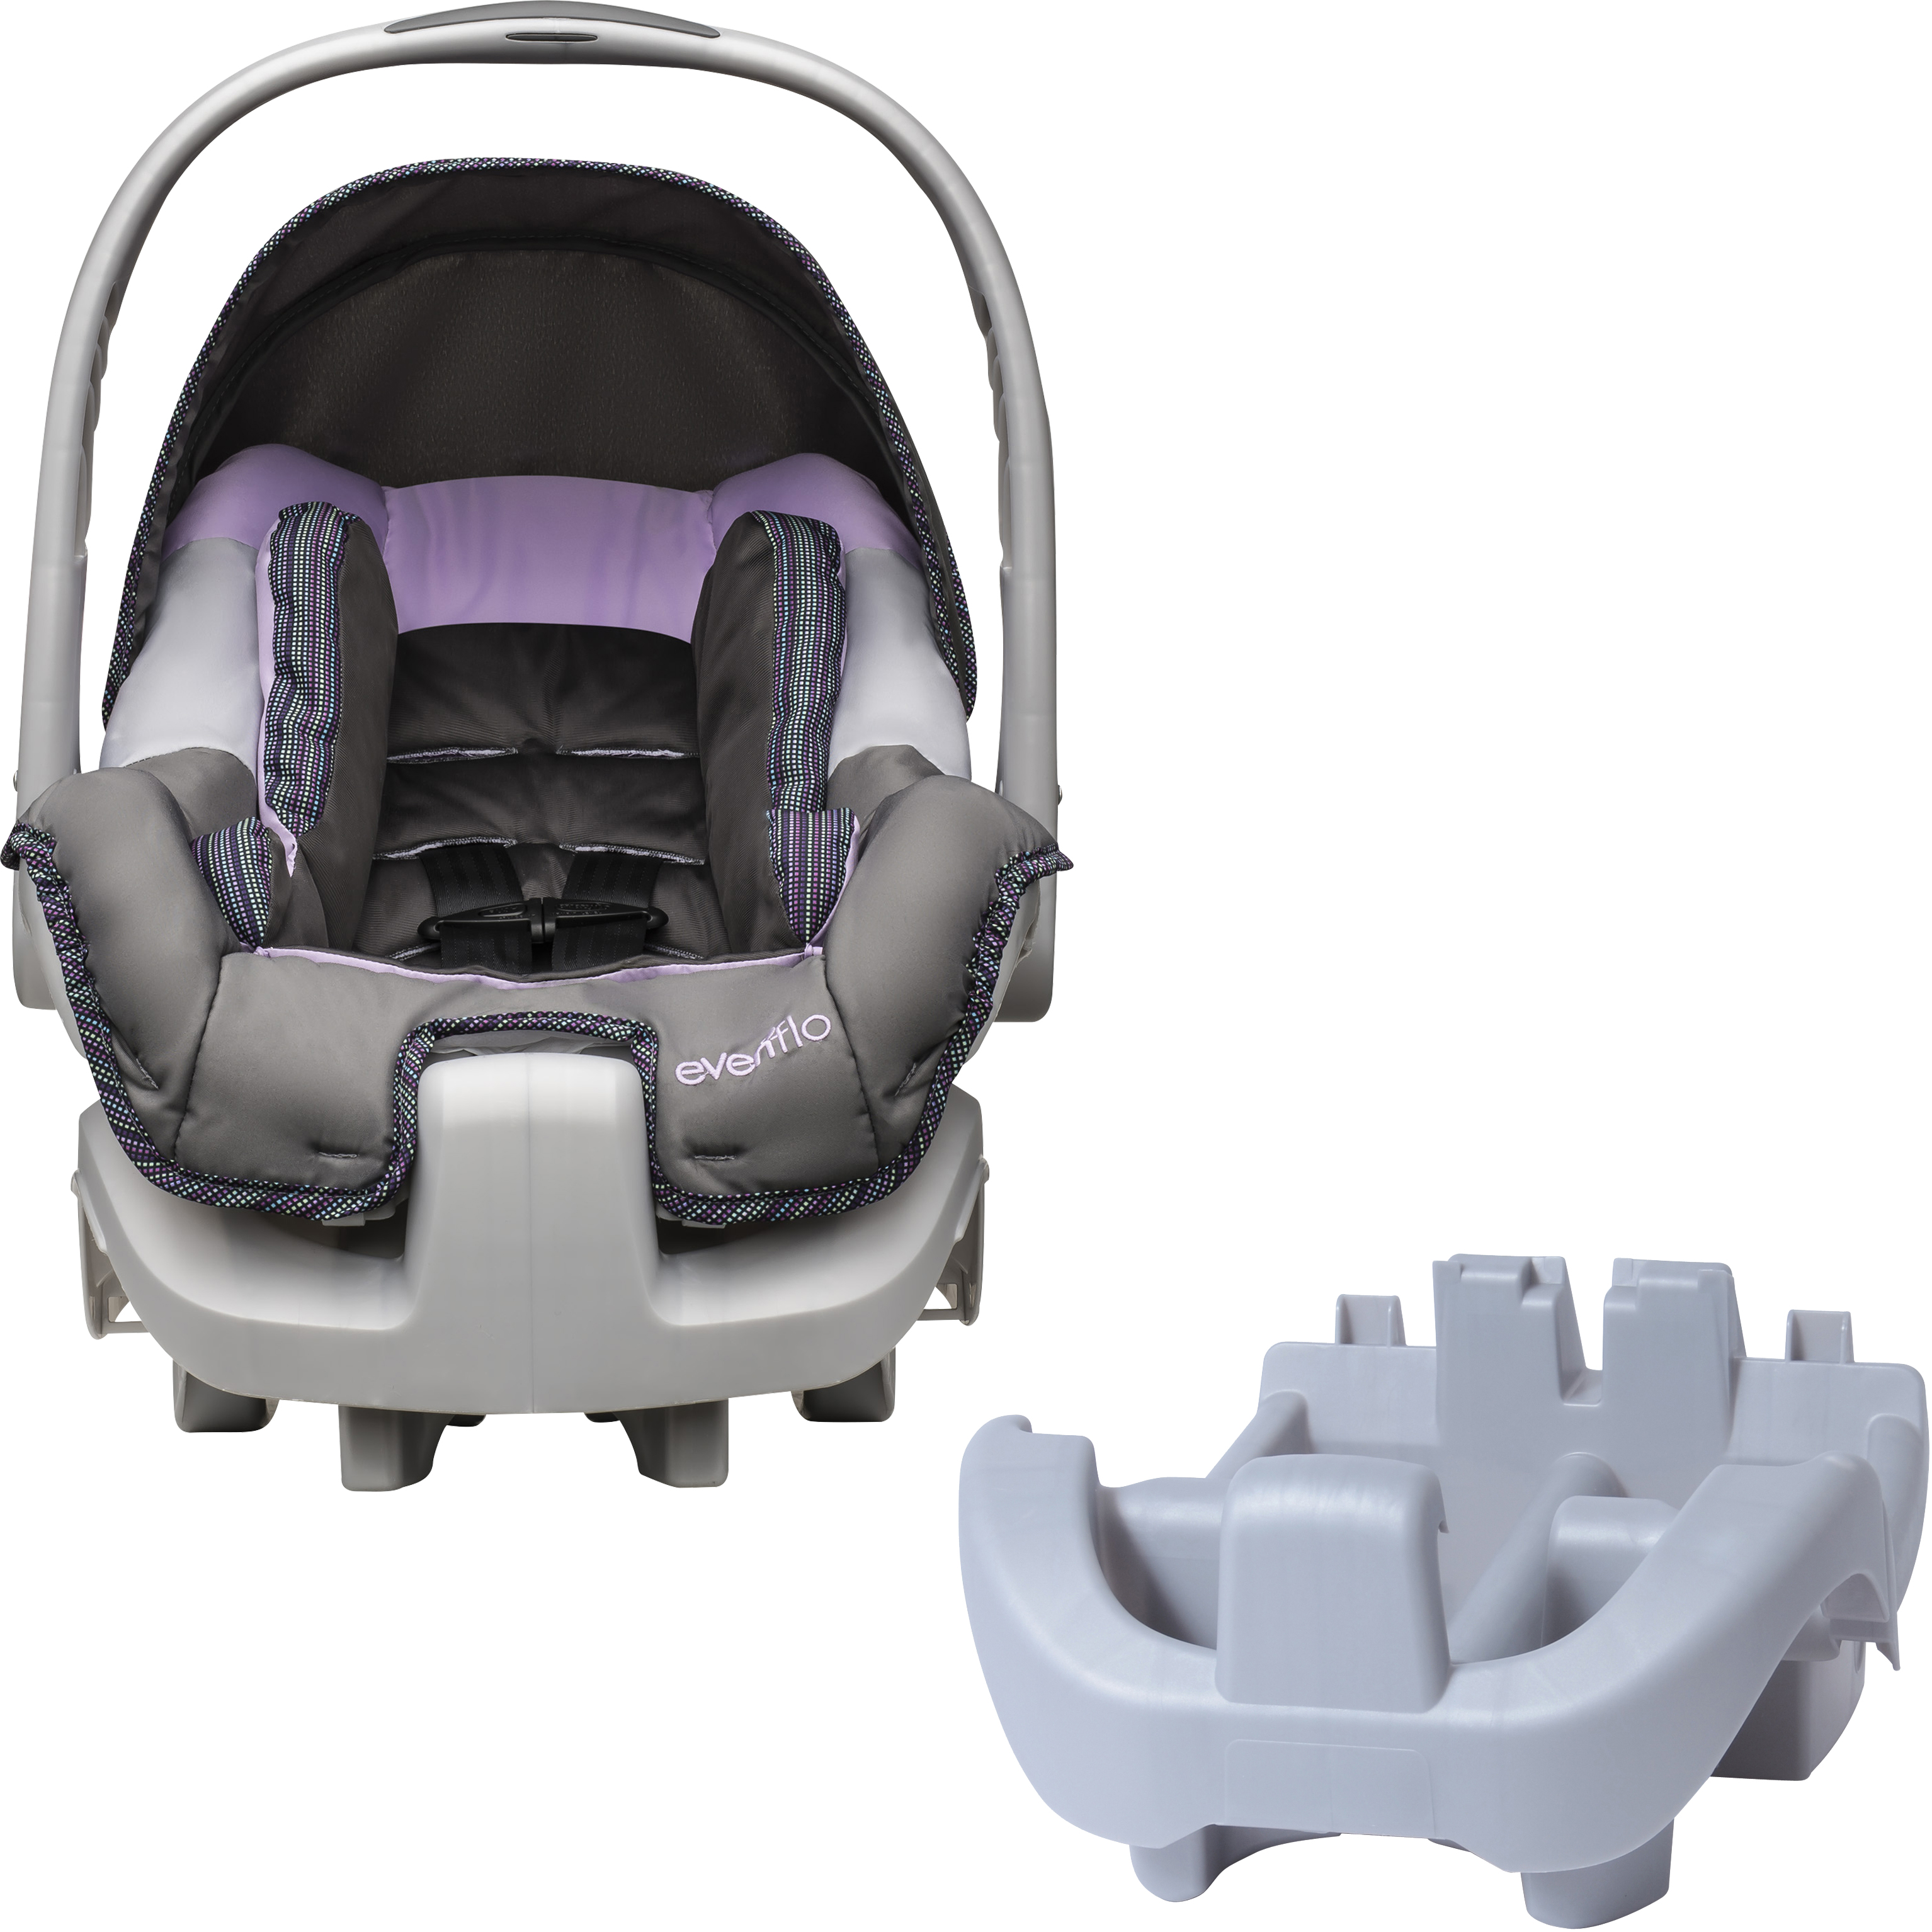 Evenflo Nurture DLX Infant Car Seat, Kiri, with BONUS Nurture Car Seat Base